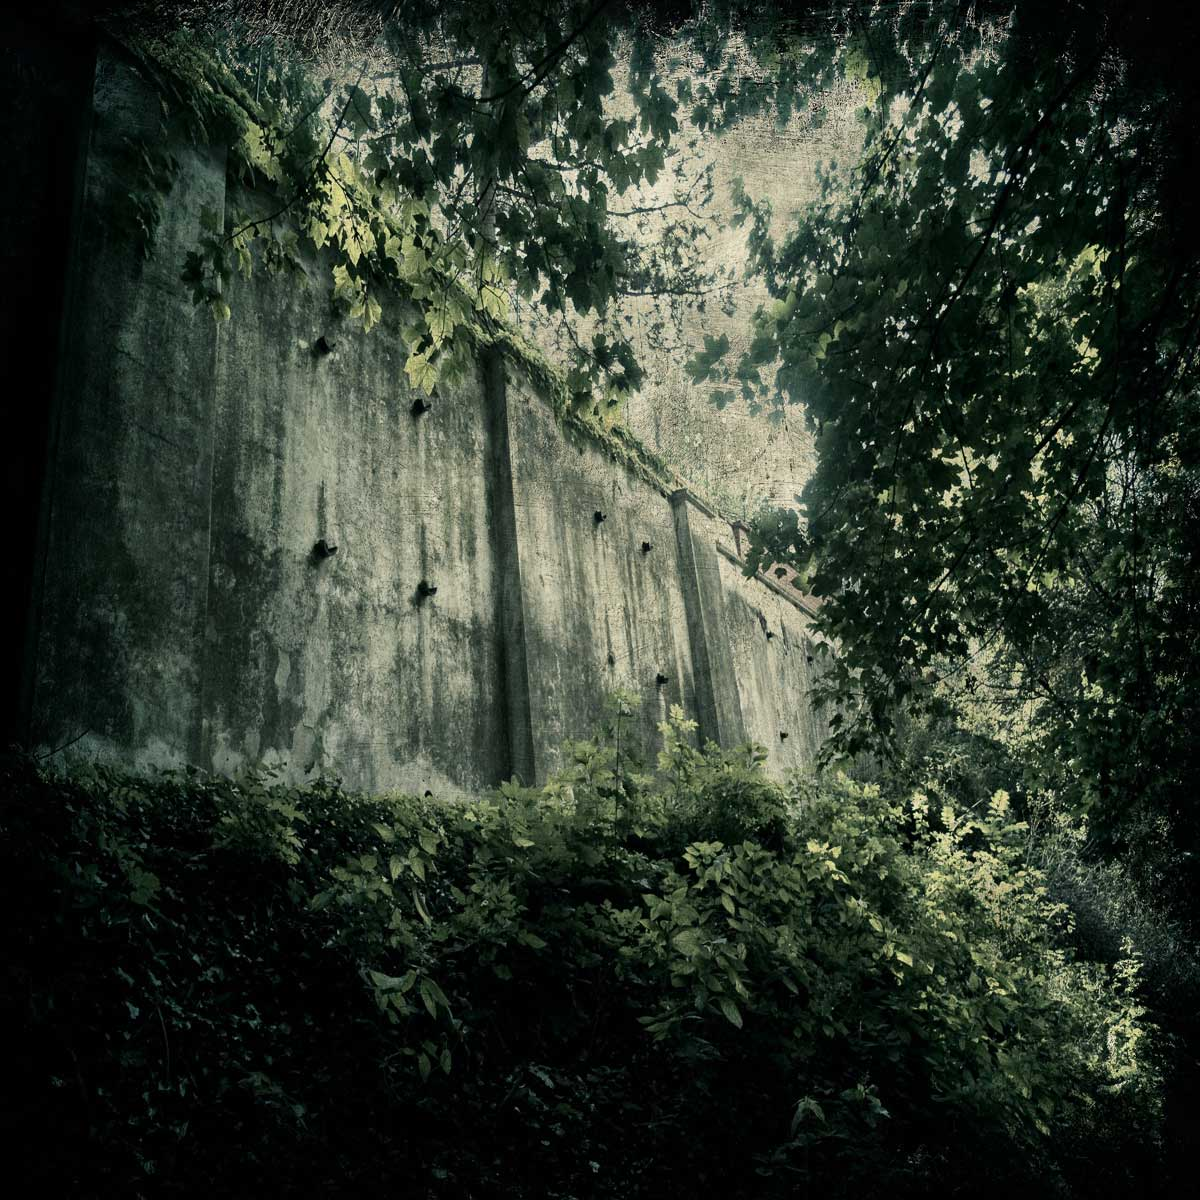 castle_wall_in_the_woods20x20v2.jpg